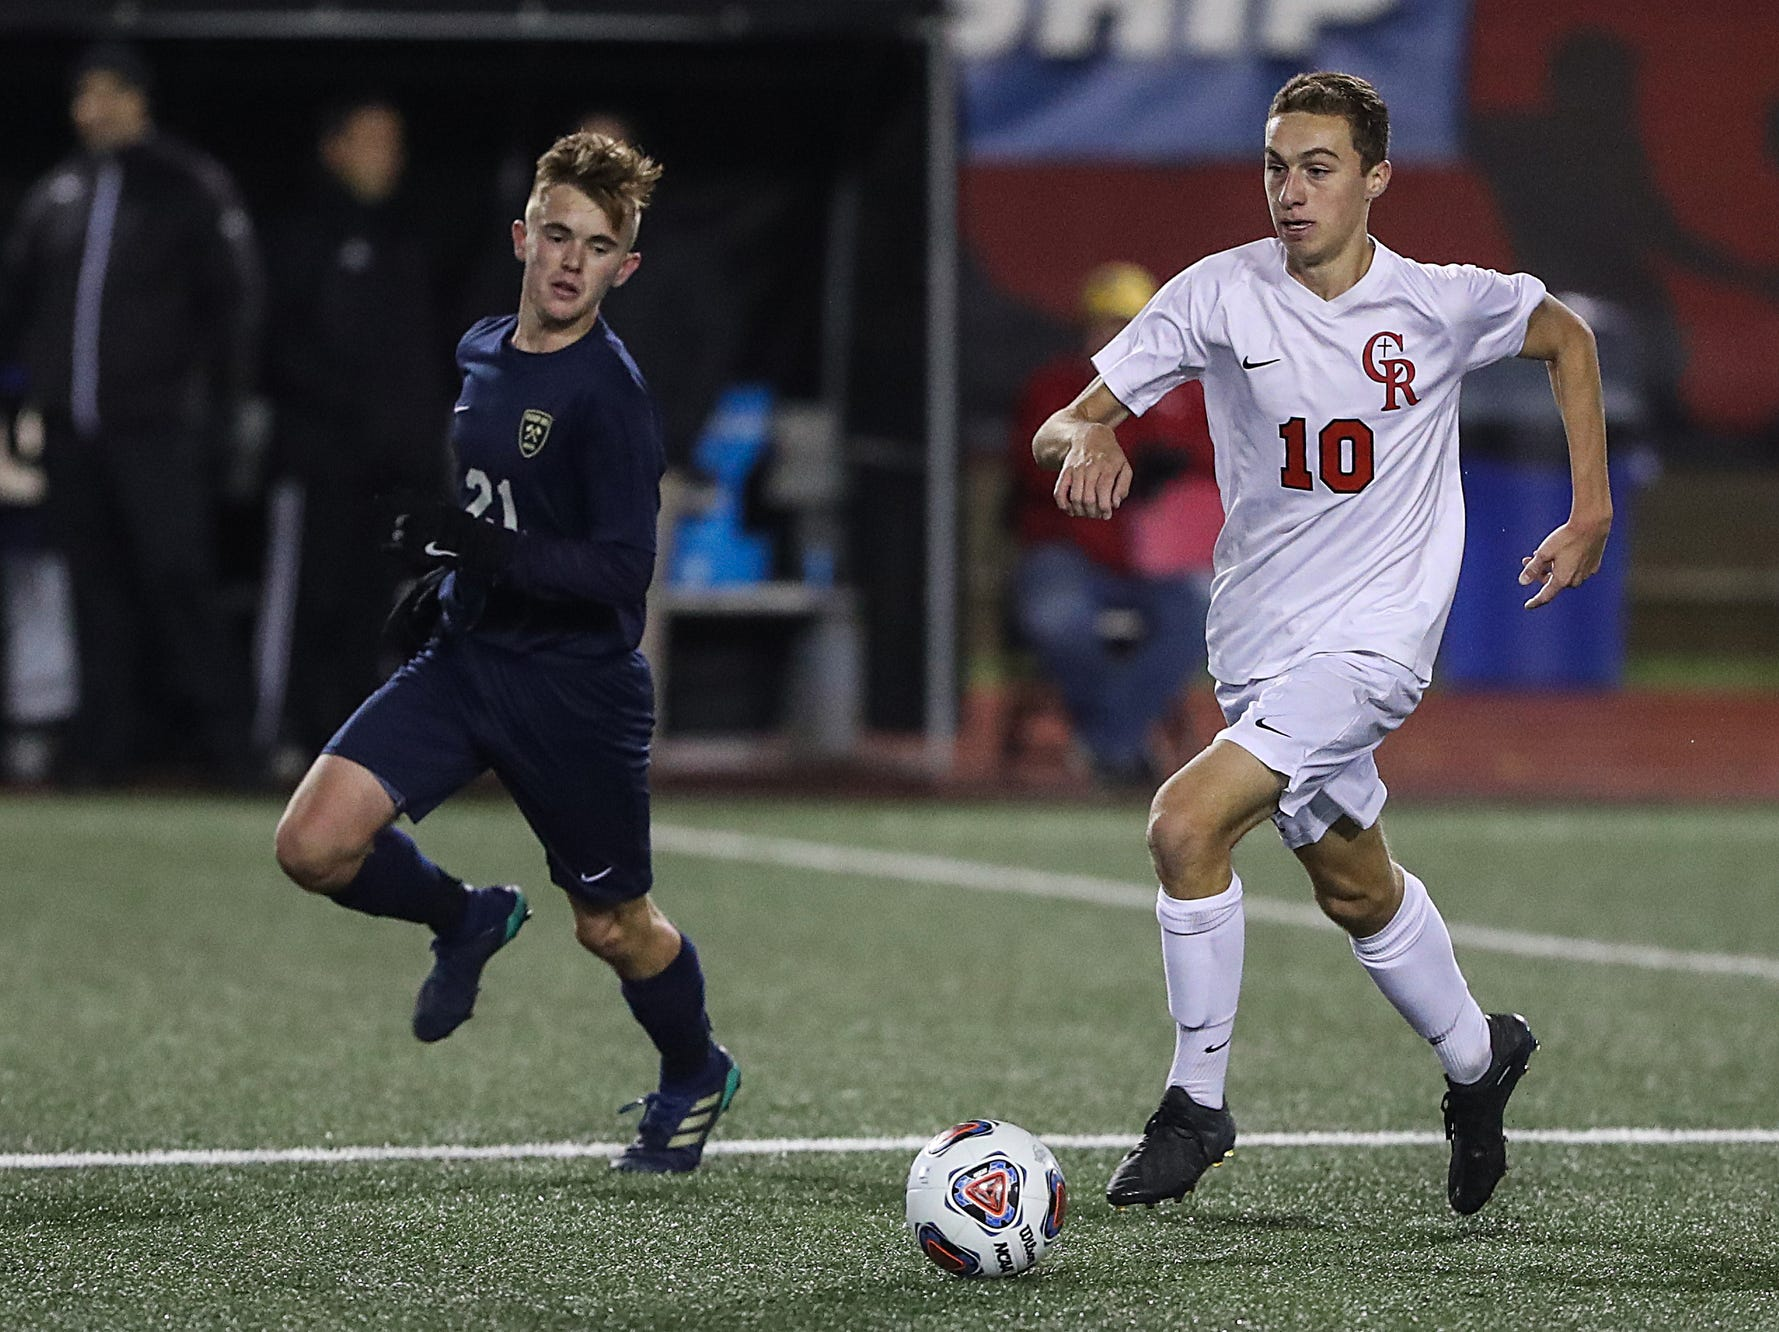 Hammond Bishop Noll Warriors midfielder Noah Reid (21) chases after Cardinal Ritter Raiders midfielder Ryan Hofer (10) during the second half of IHSAA class 2A state finals at IUPUI's Michael A. Carroll Stadium in Indianapolis, Friday, Oct. 26, 2018. Hammond Bishop Noll defeated Cardinal Ritter, 1-0.